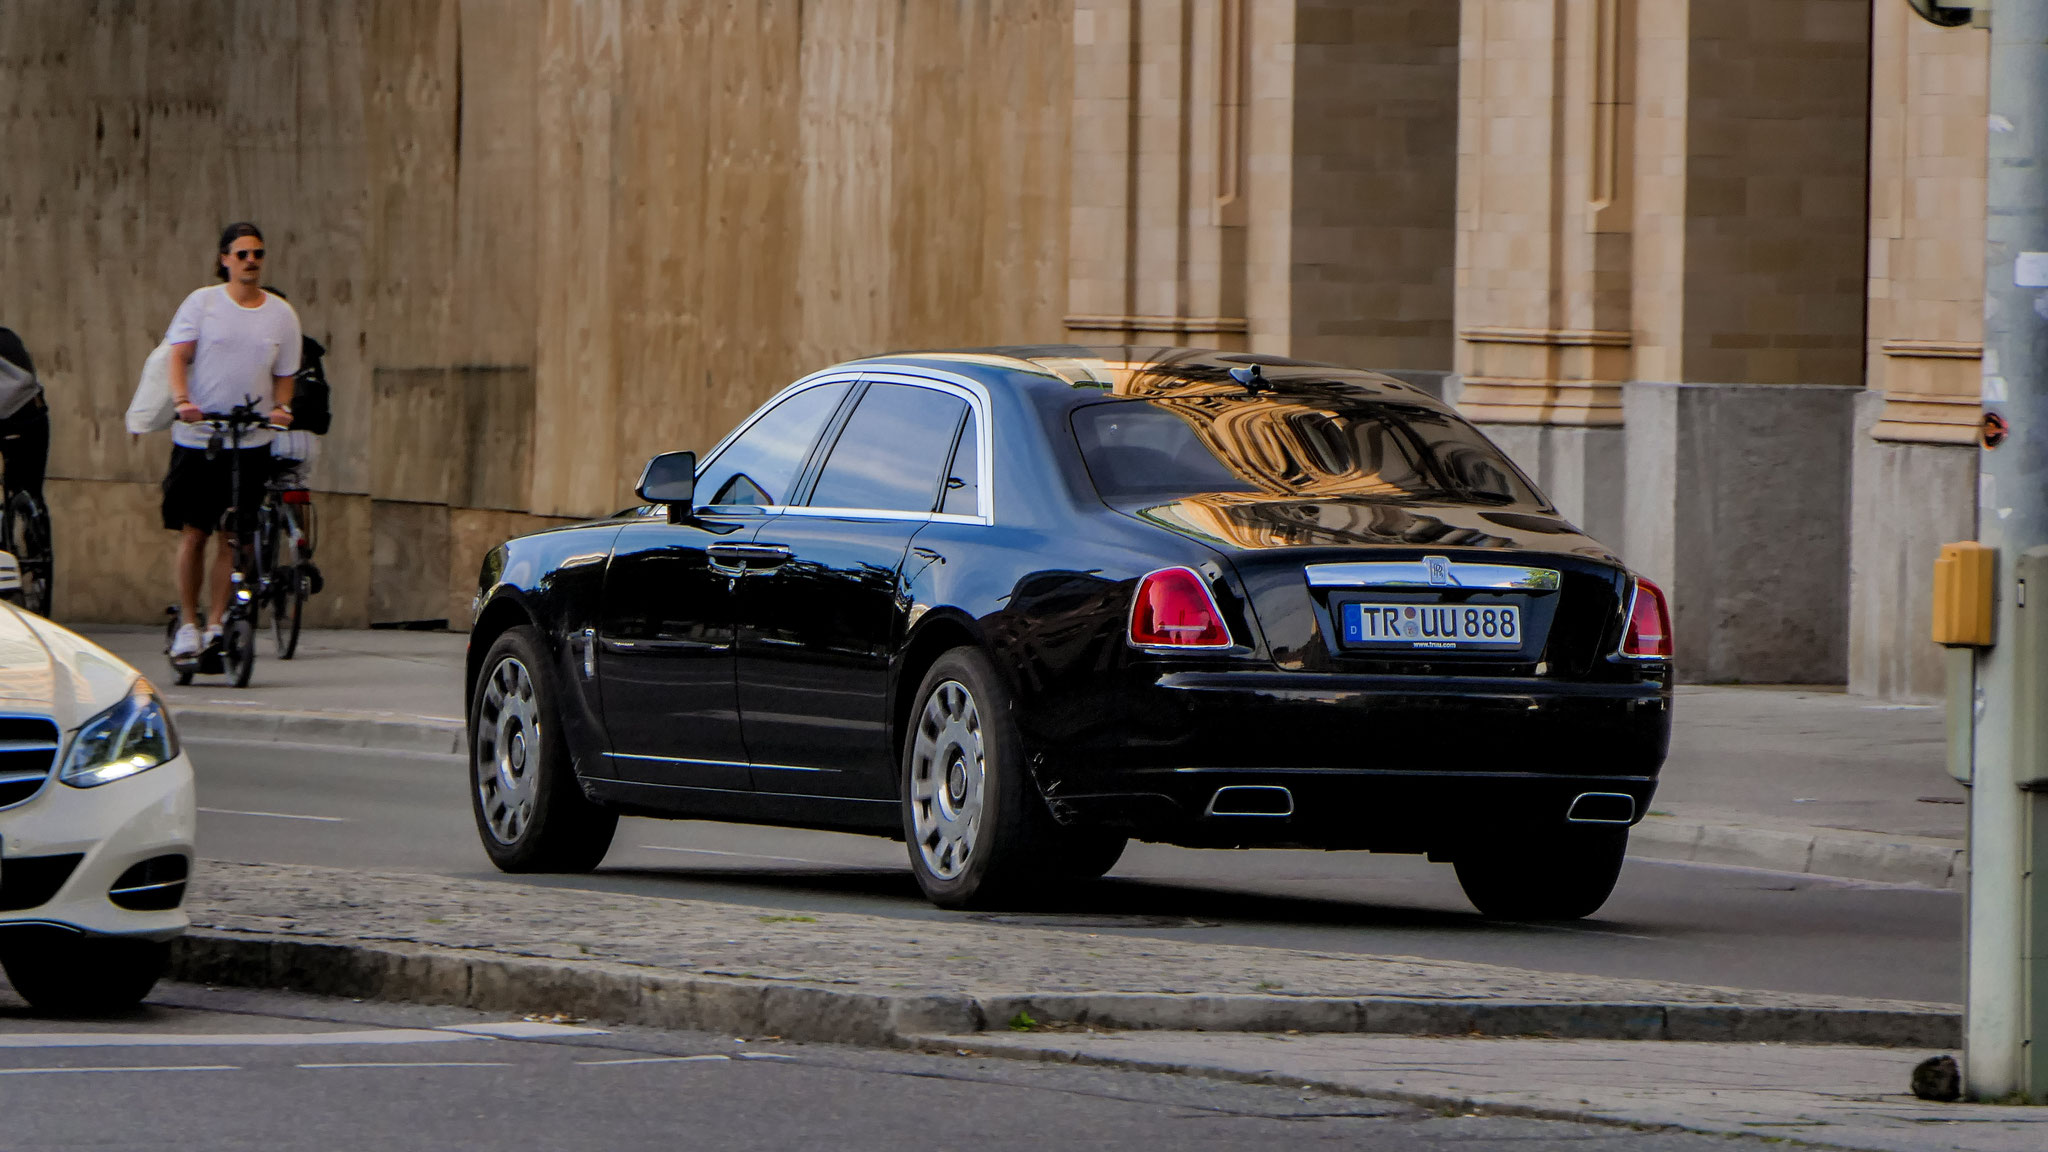 Rolls Royce Ghost Series II - TR-UU-888